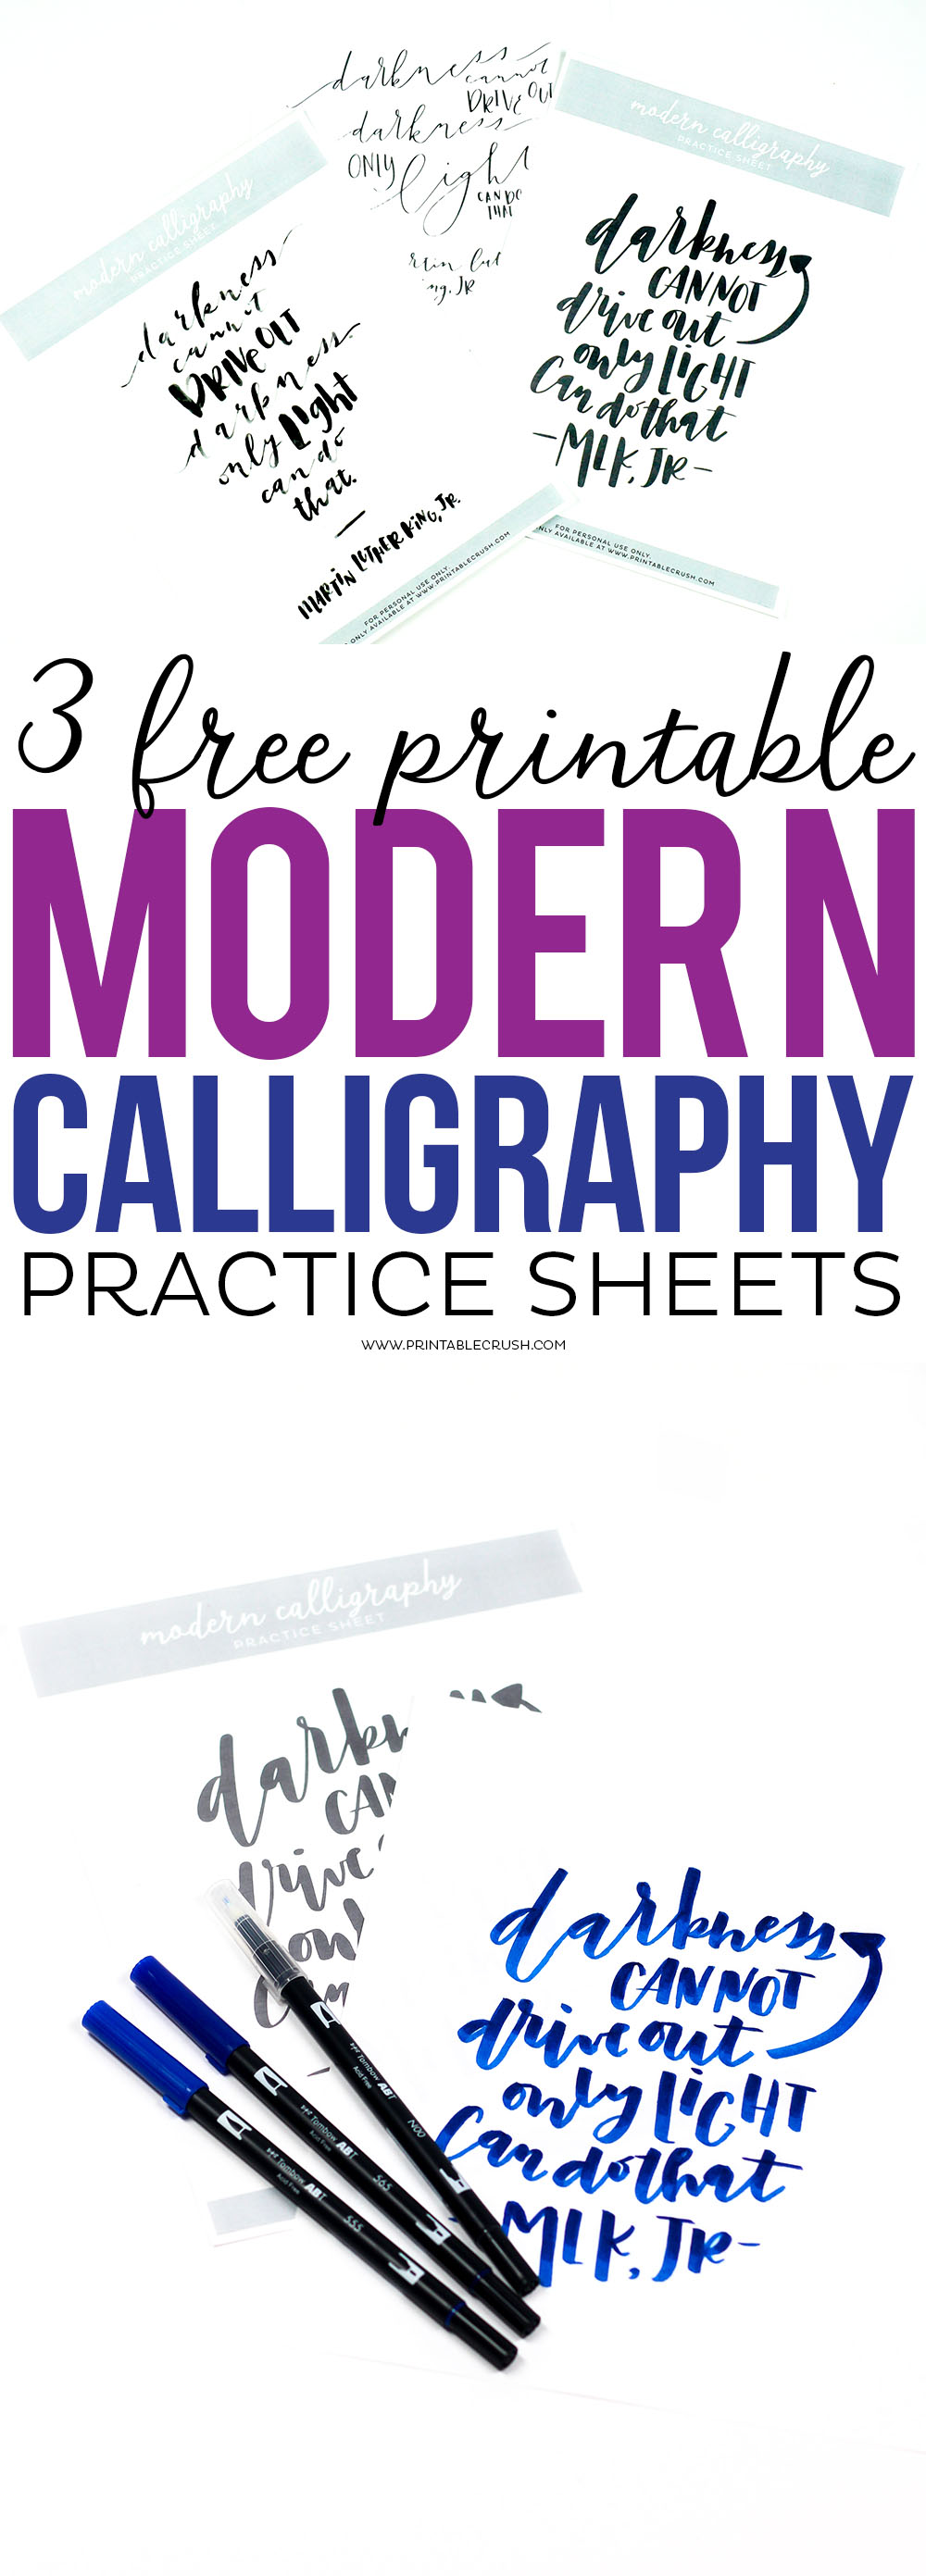 image about Calligraphy Practice Sheets Printable titled 3 Absolutely free Printable Innovative Calligraphy Coach Sheets